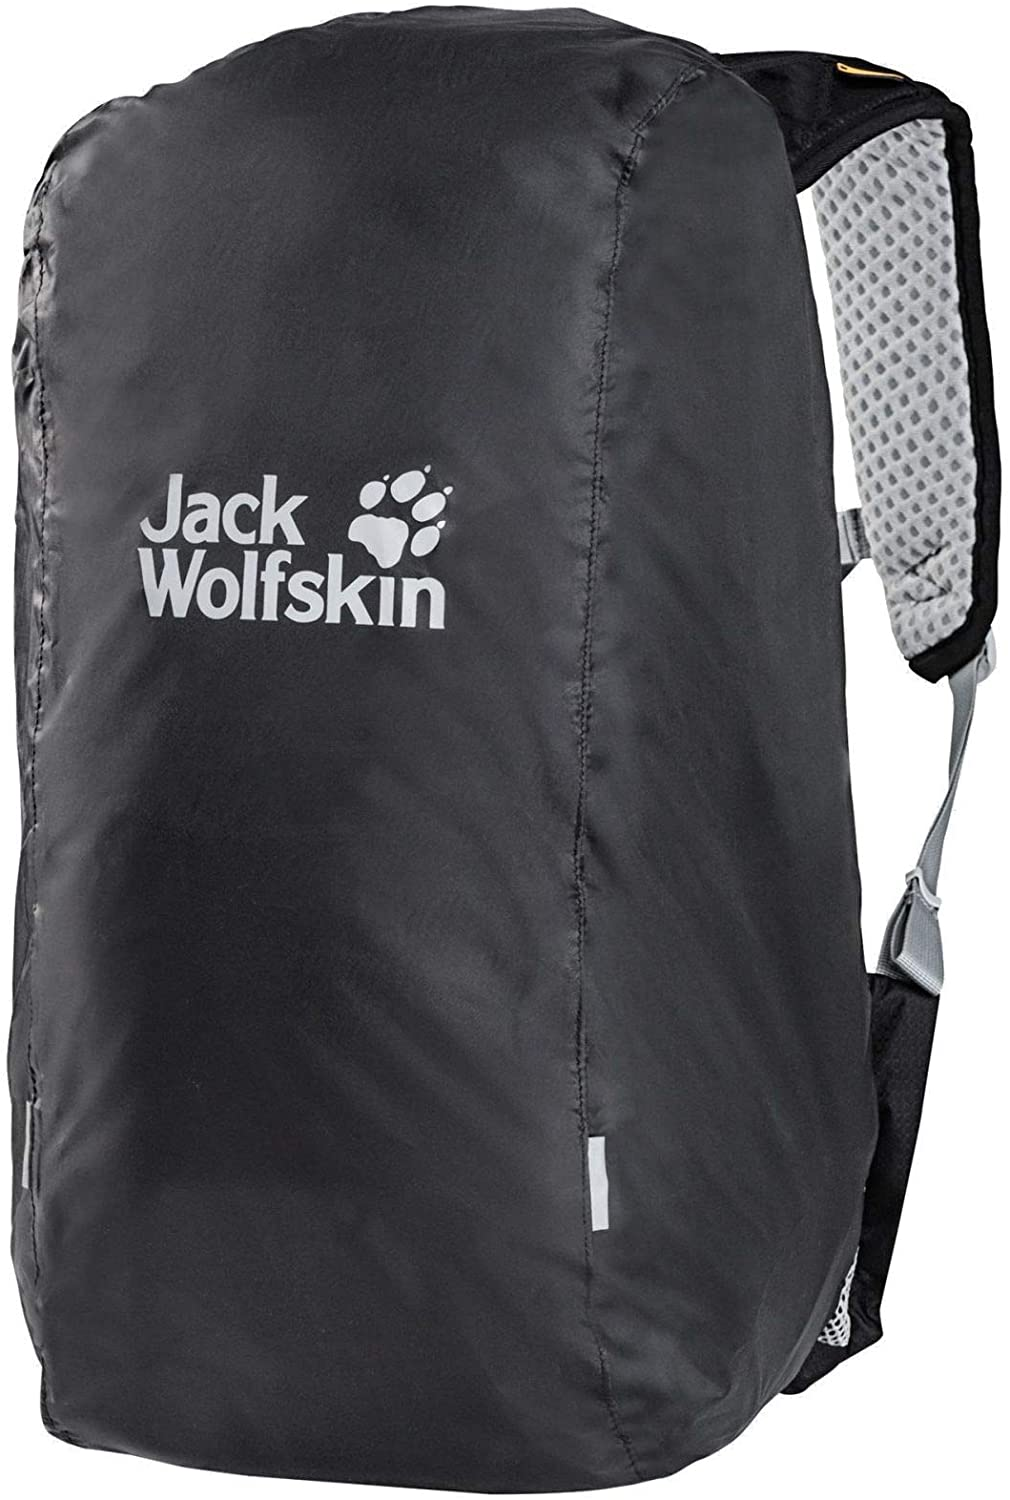 Jack Wolfskin Unisex-Adult RAINCOVER 60-85L Outdoor Backpacks Phantom ONE Size